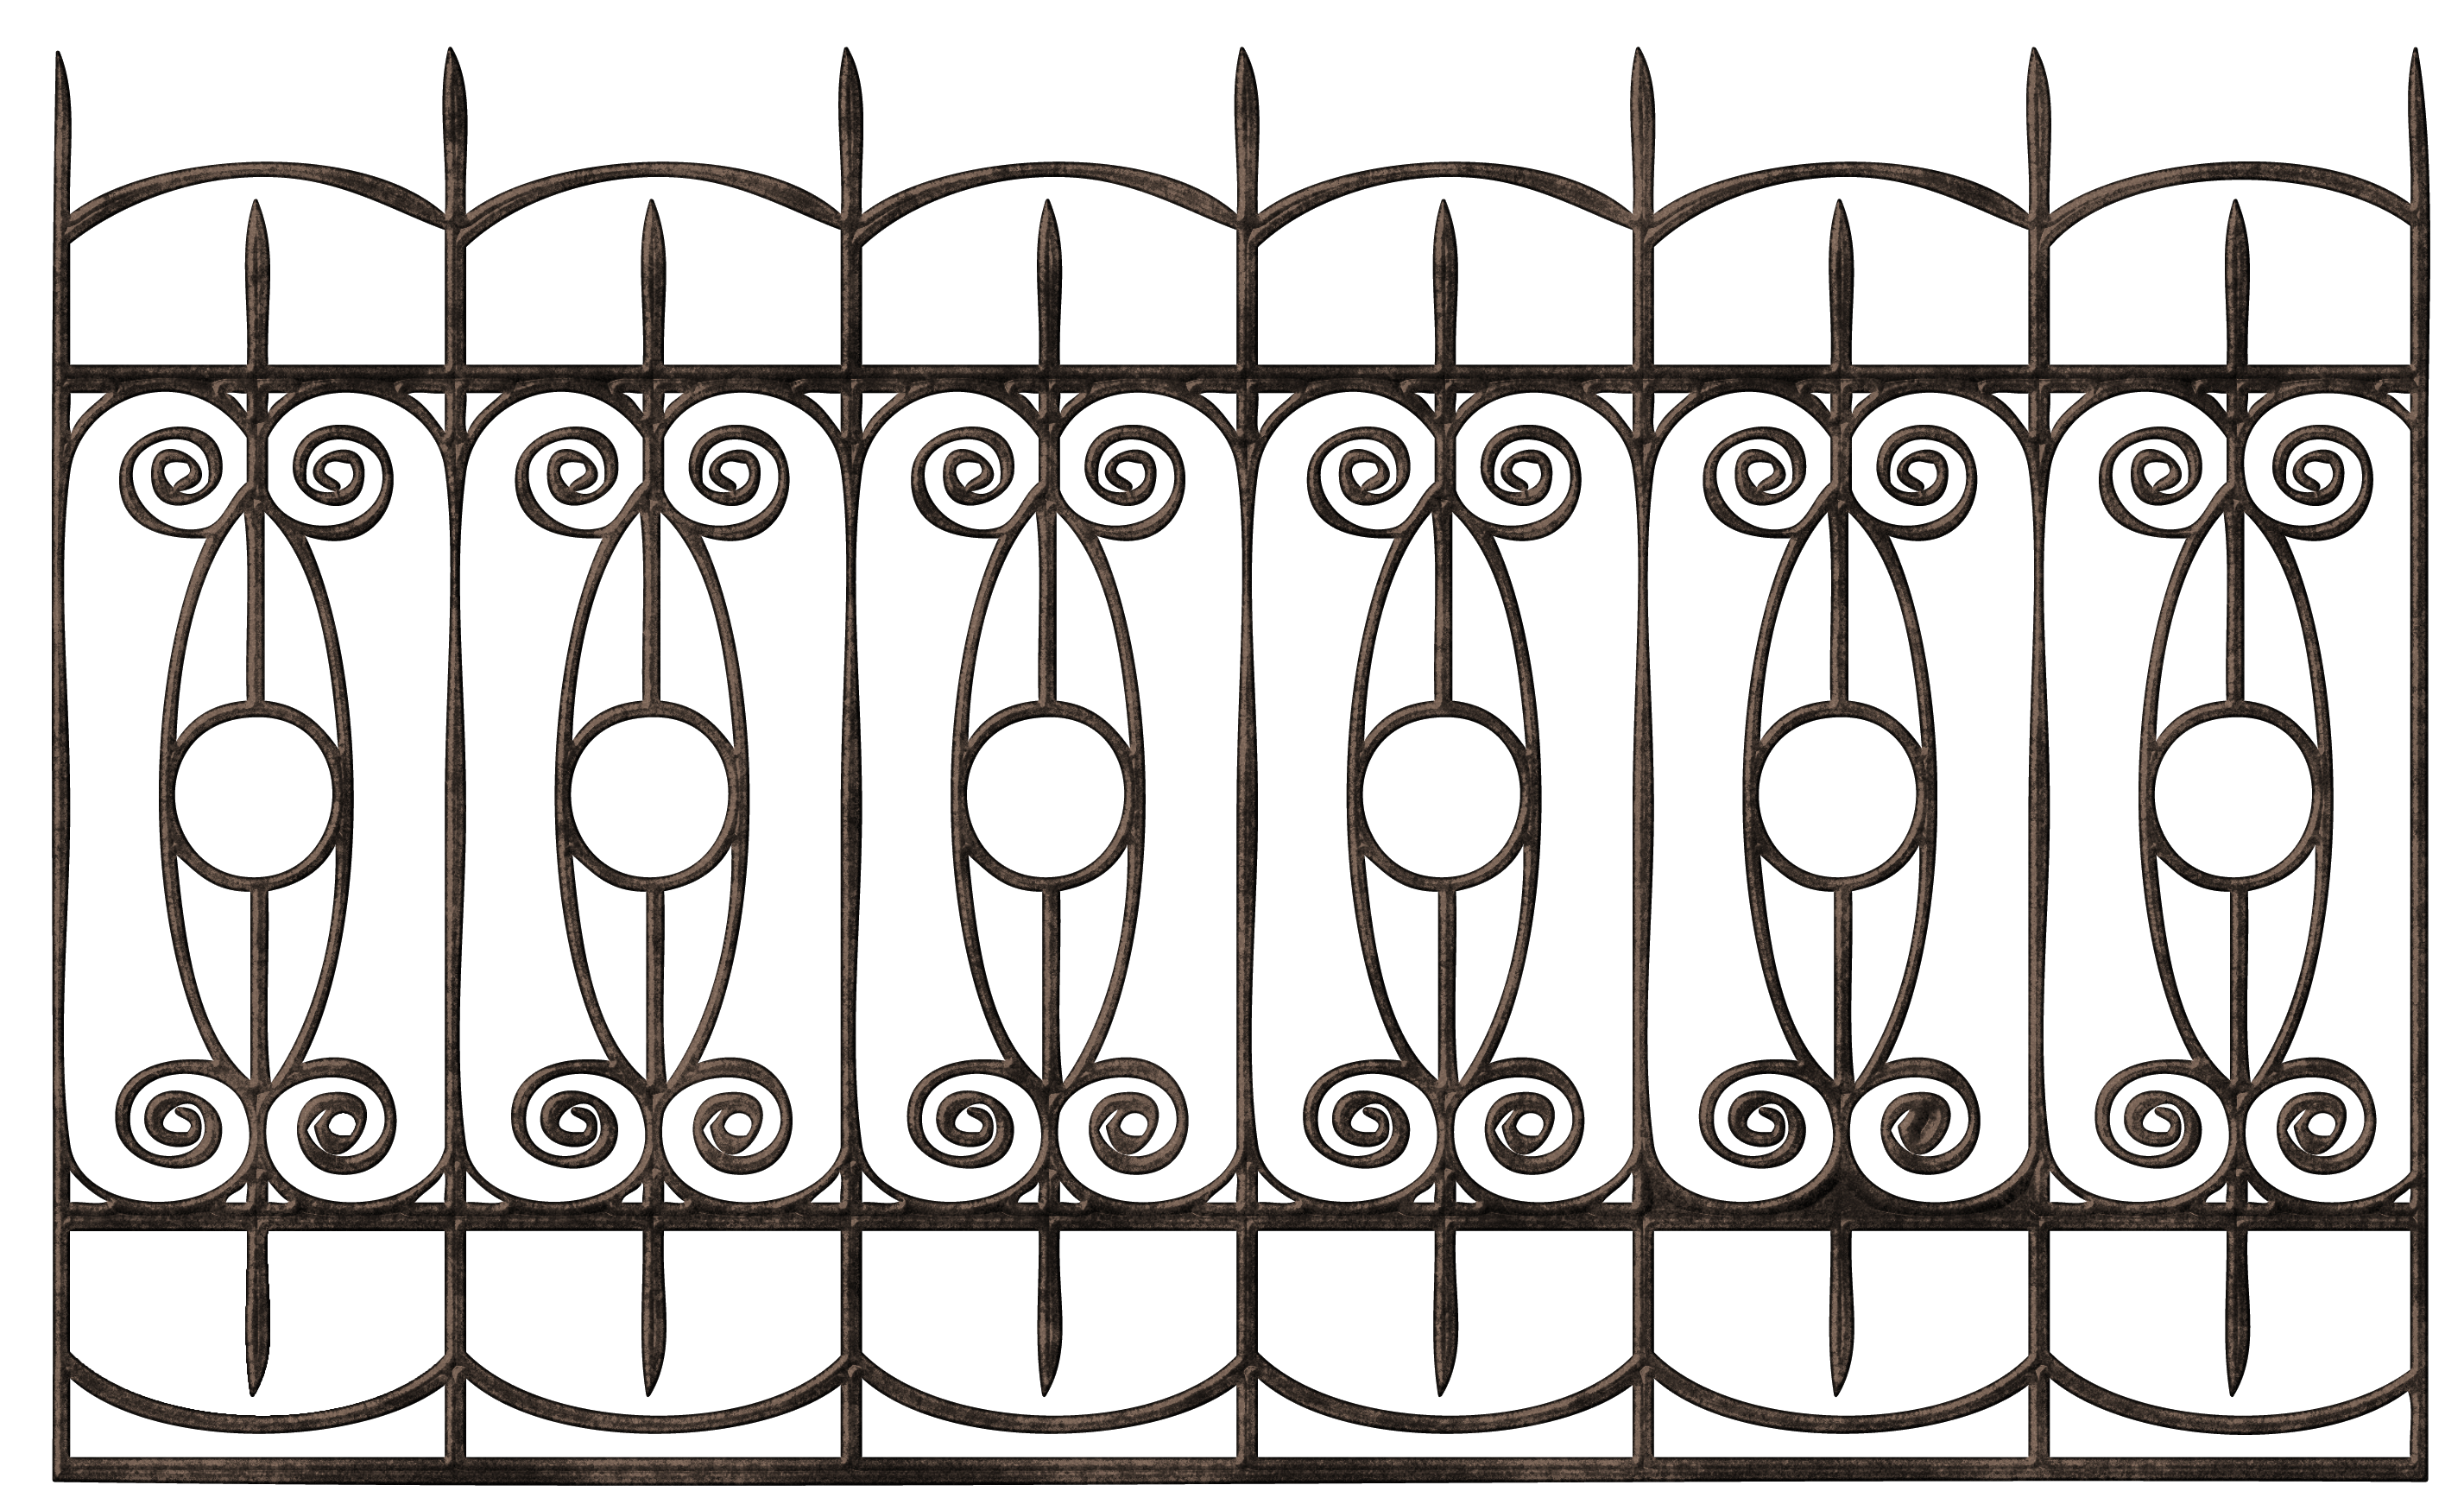 White picket fence house clipart png free stock Transparent Ornamental Iron Fence PNG Clipart | ClipArt | Pinterest ... png free stock